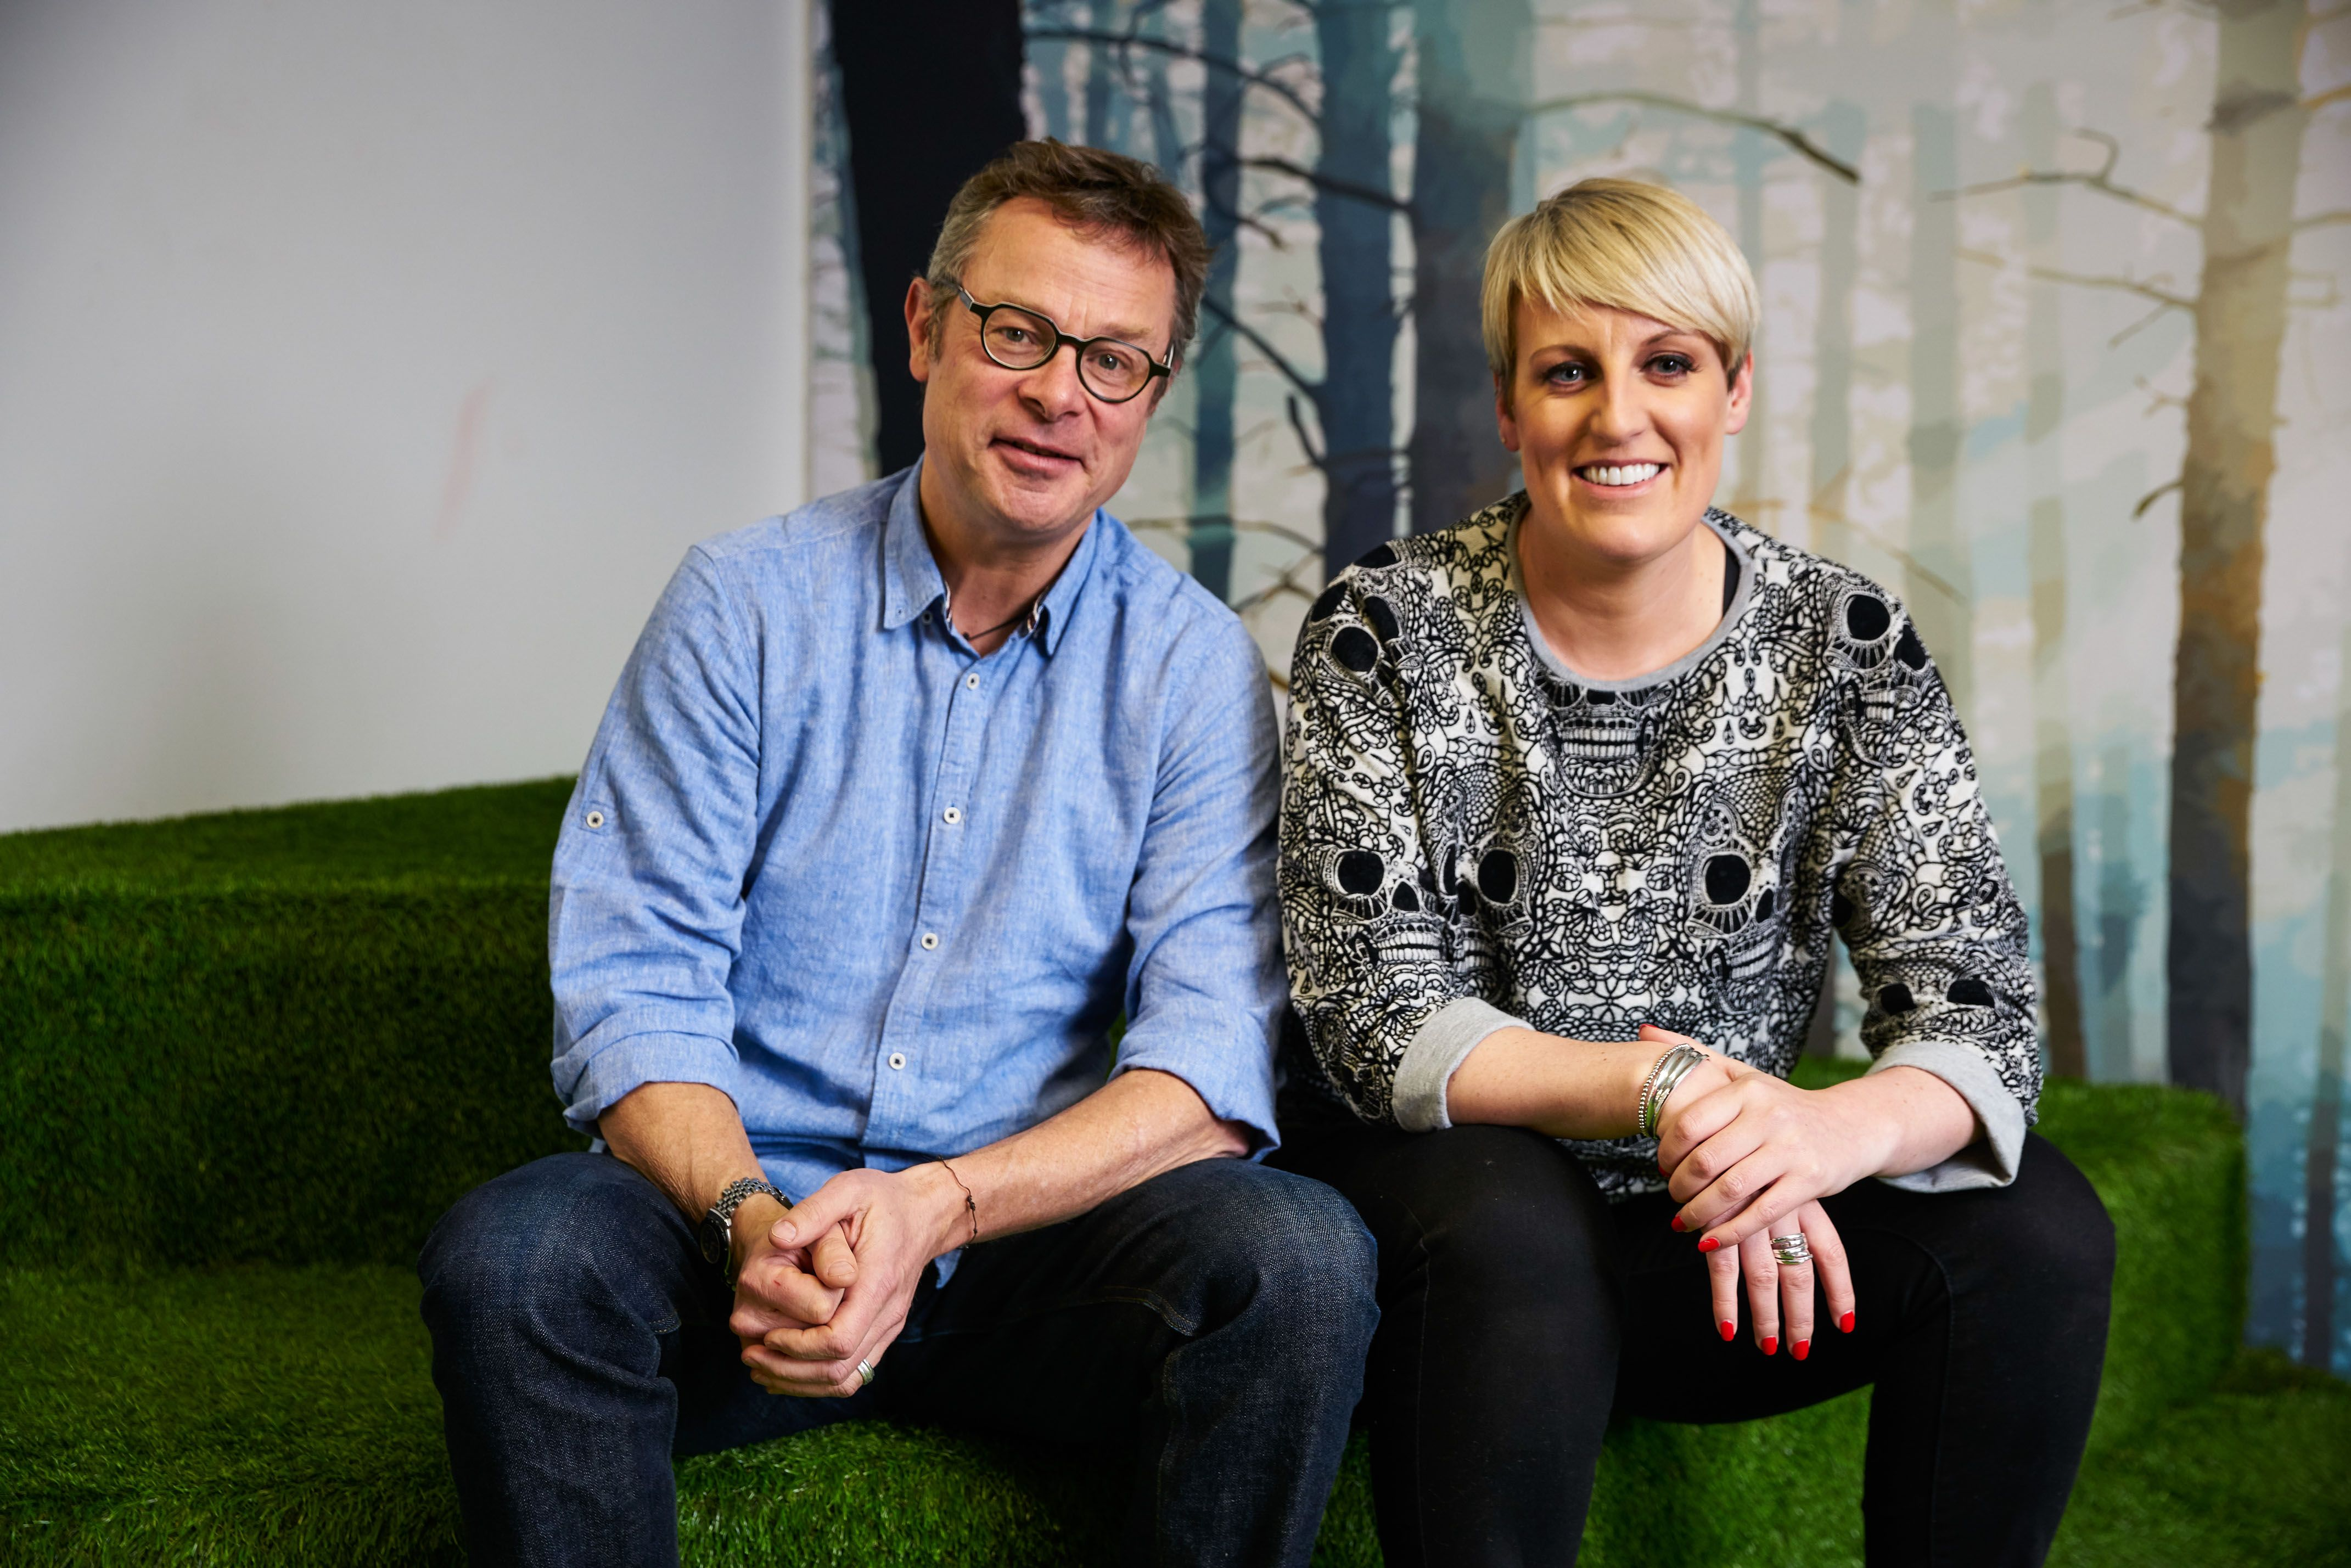 Steph McGovern teams up with Hugh Fearnley-Whittingstall for Easy Ways To Live Well